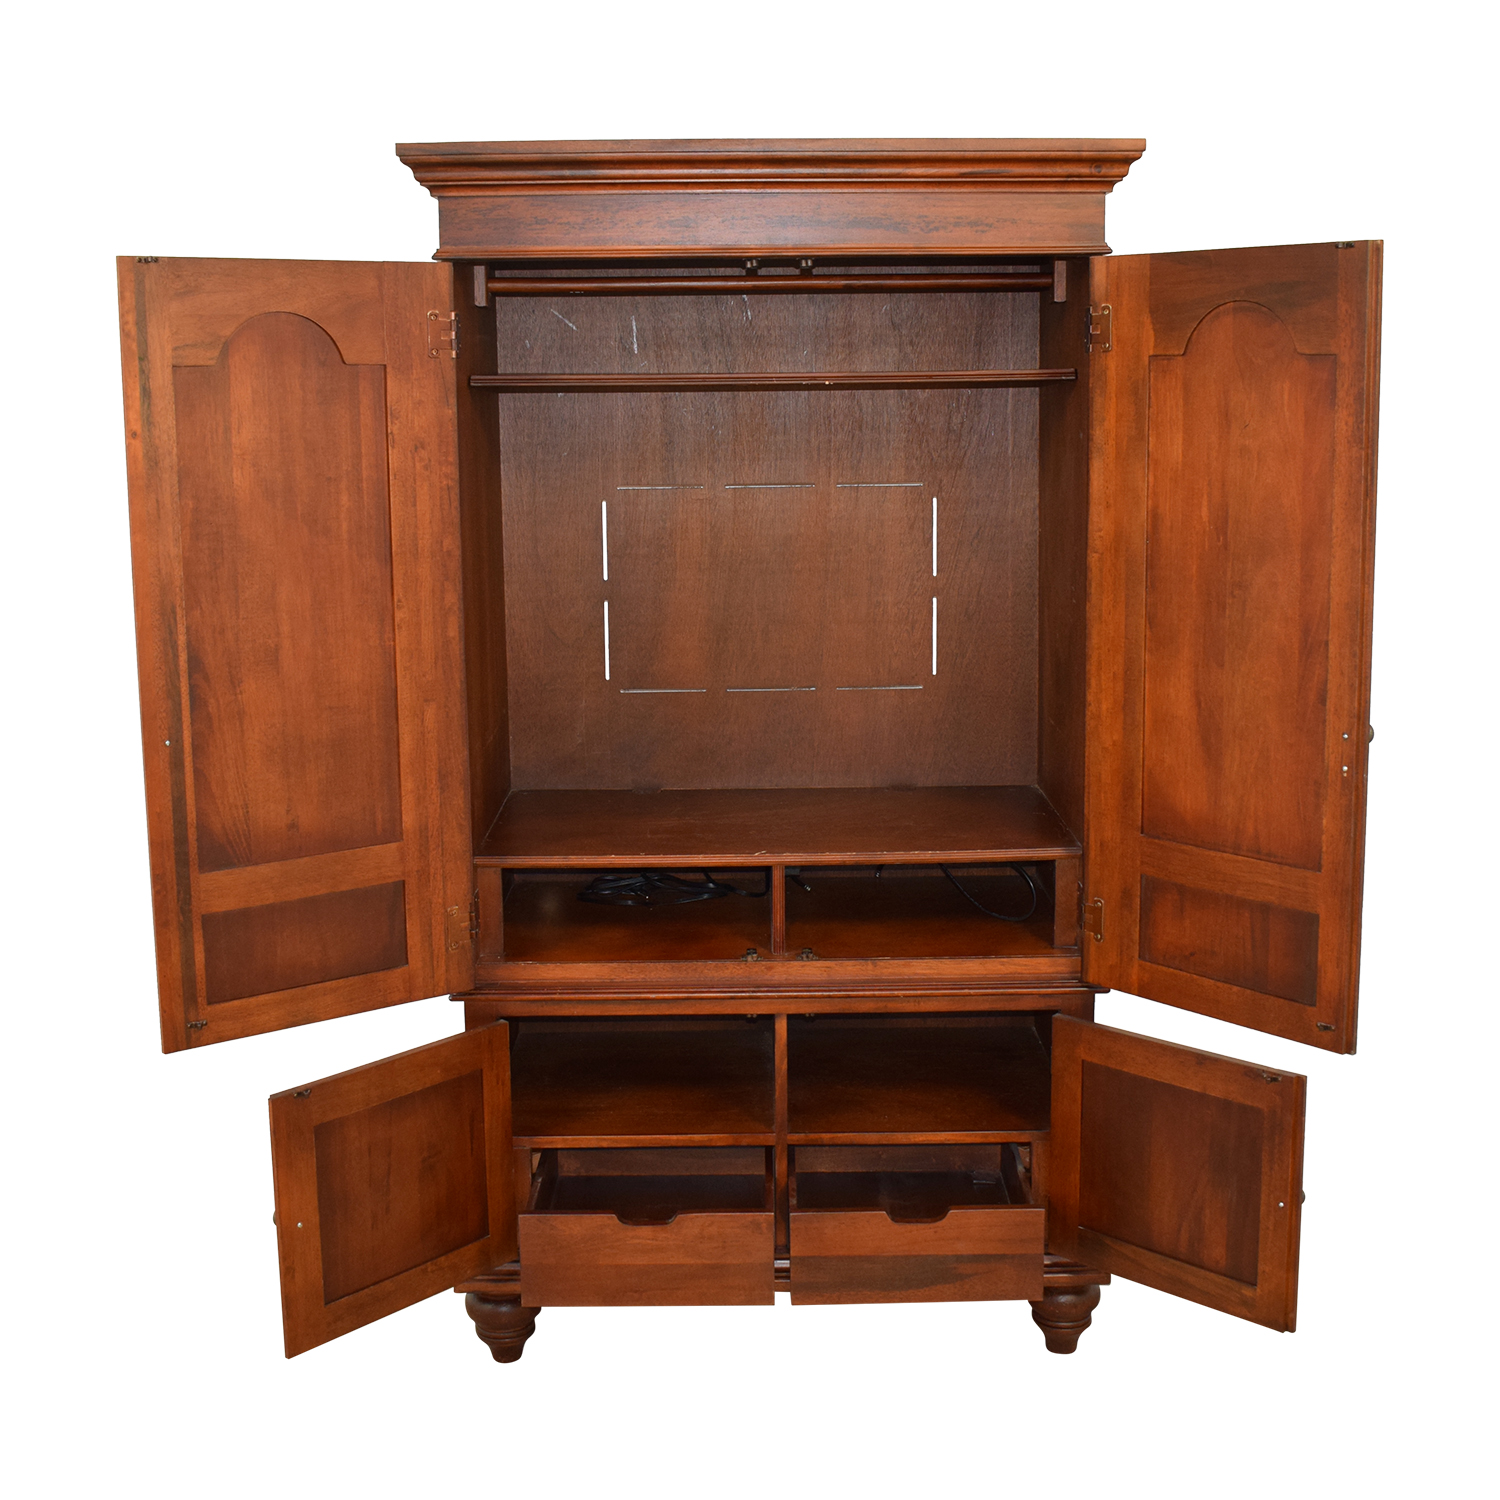 Hamilton Heritge Hamilton Heritge Wood TV Armoire for sale